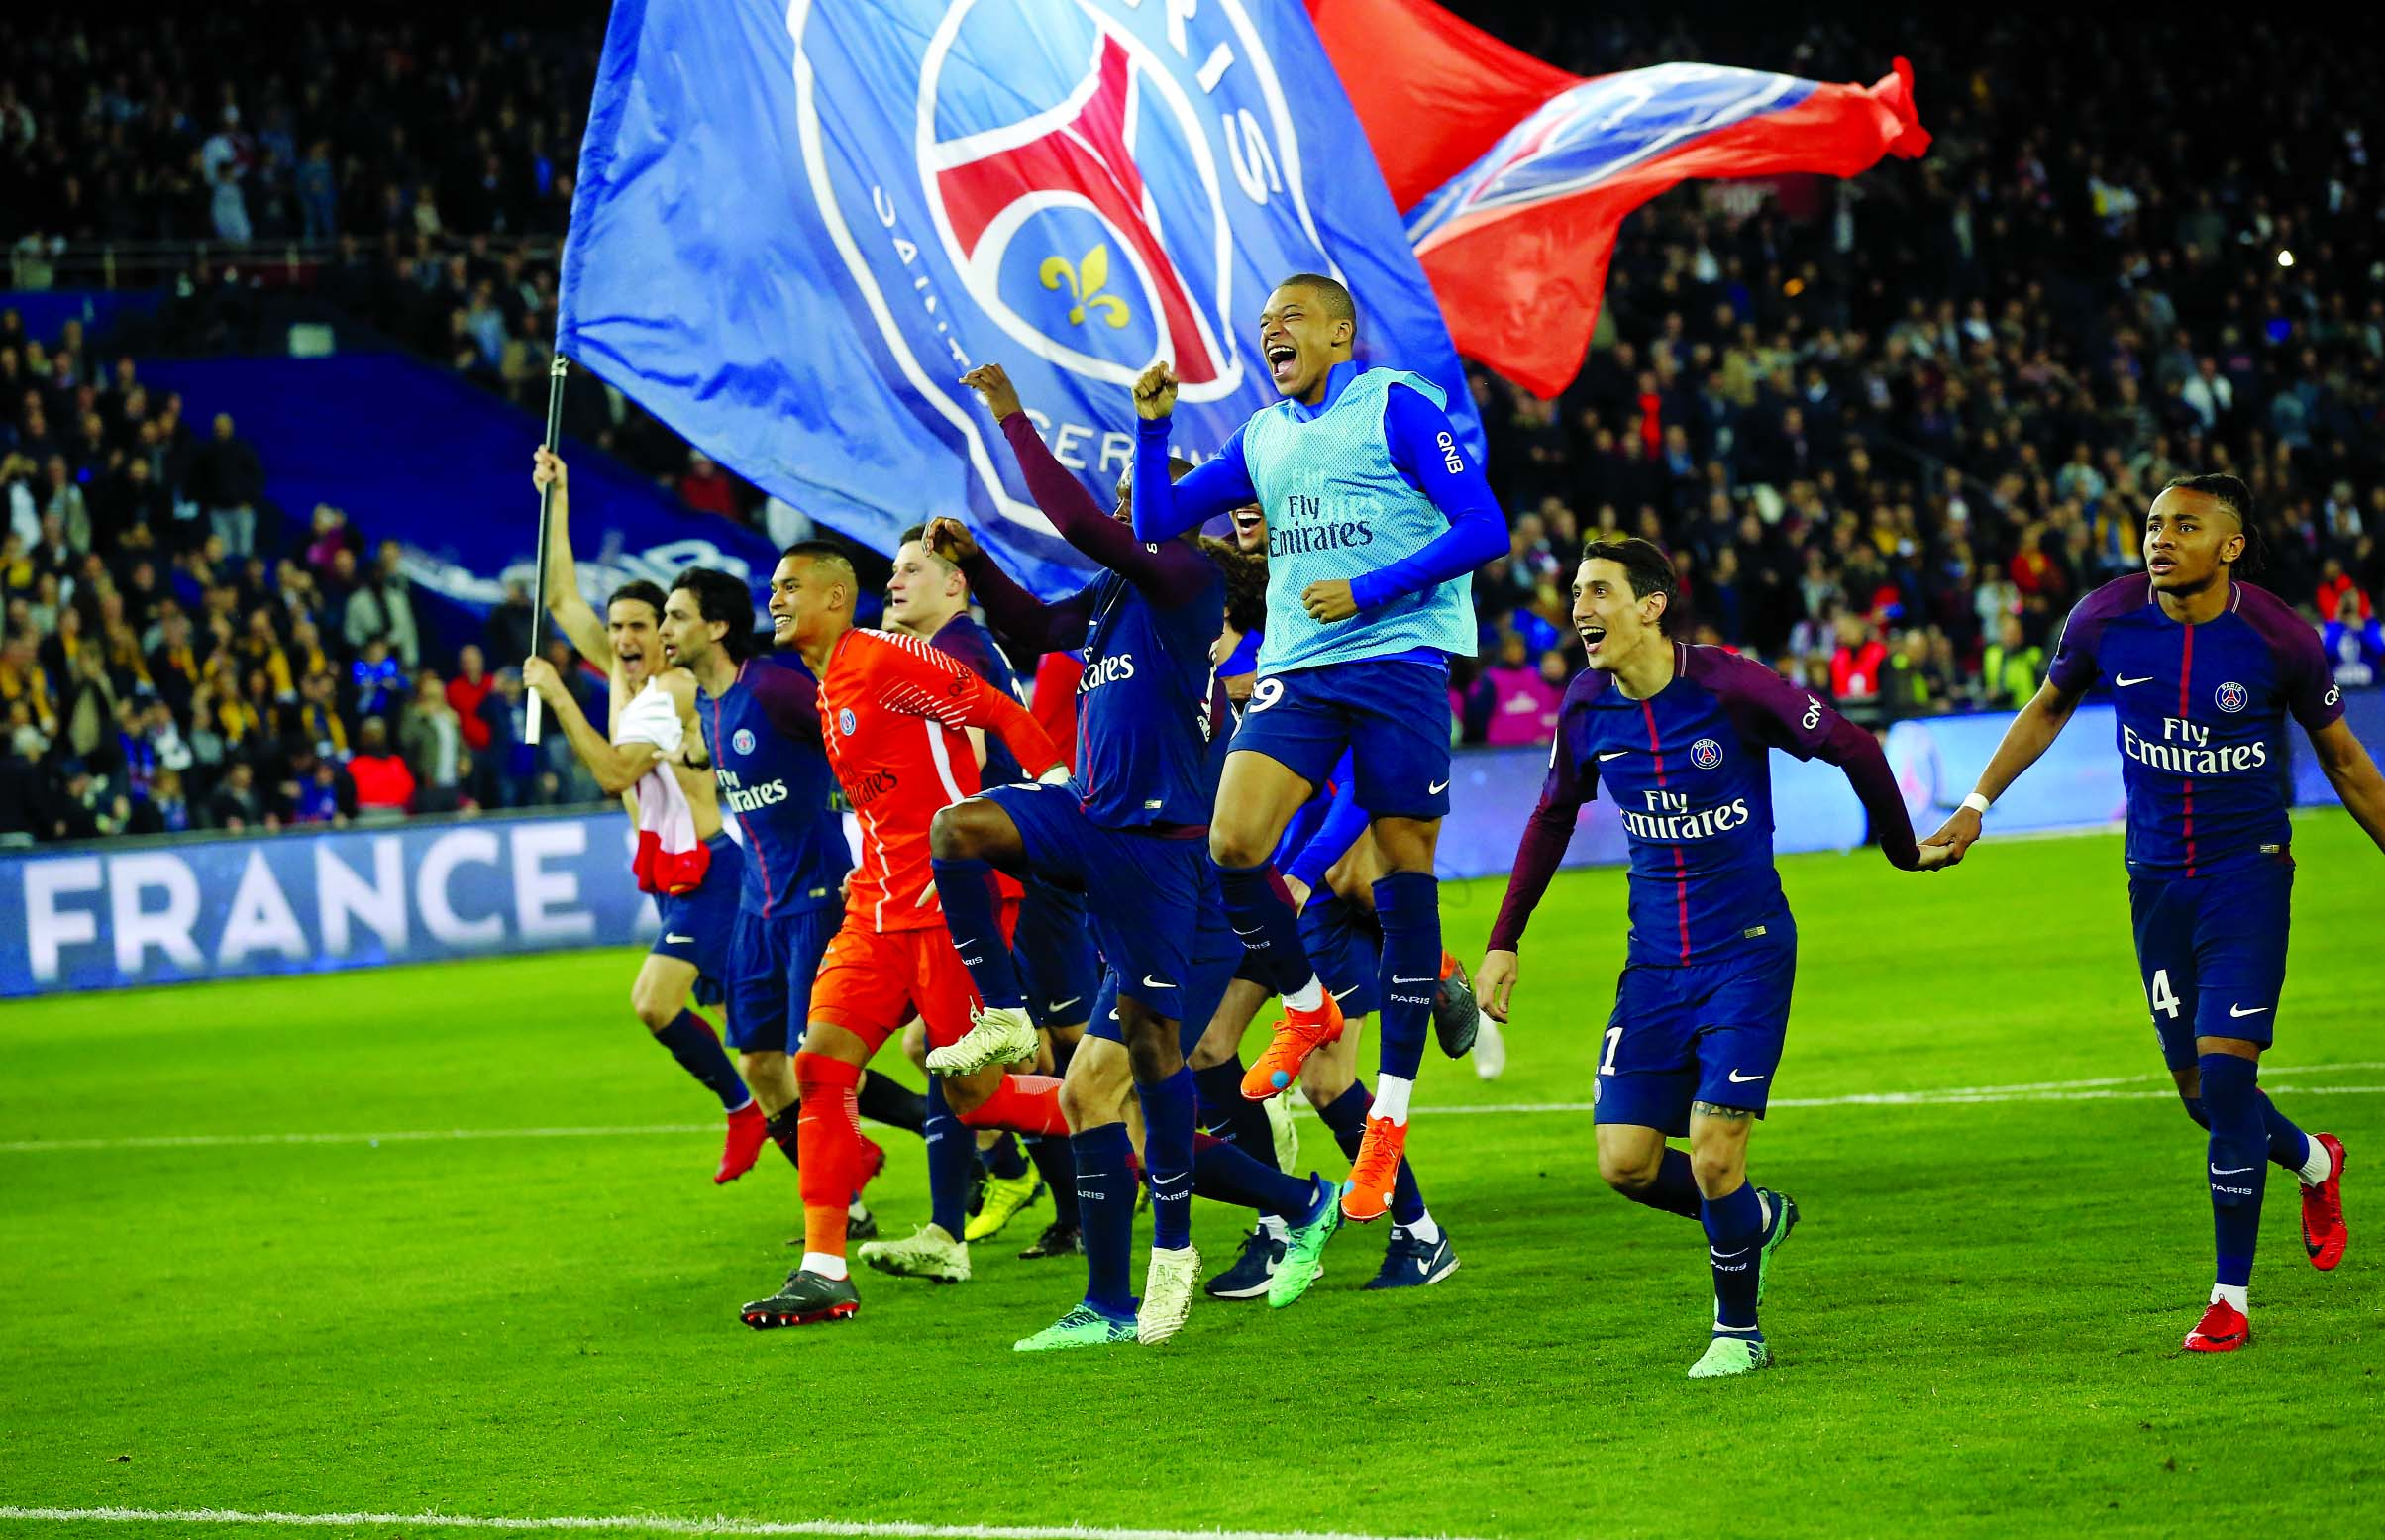 PSG win title after crushing defending champion Monaco